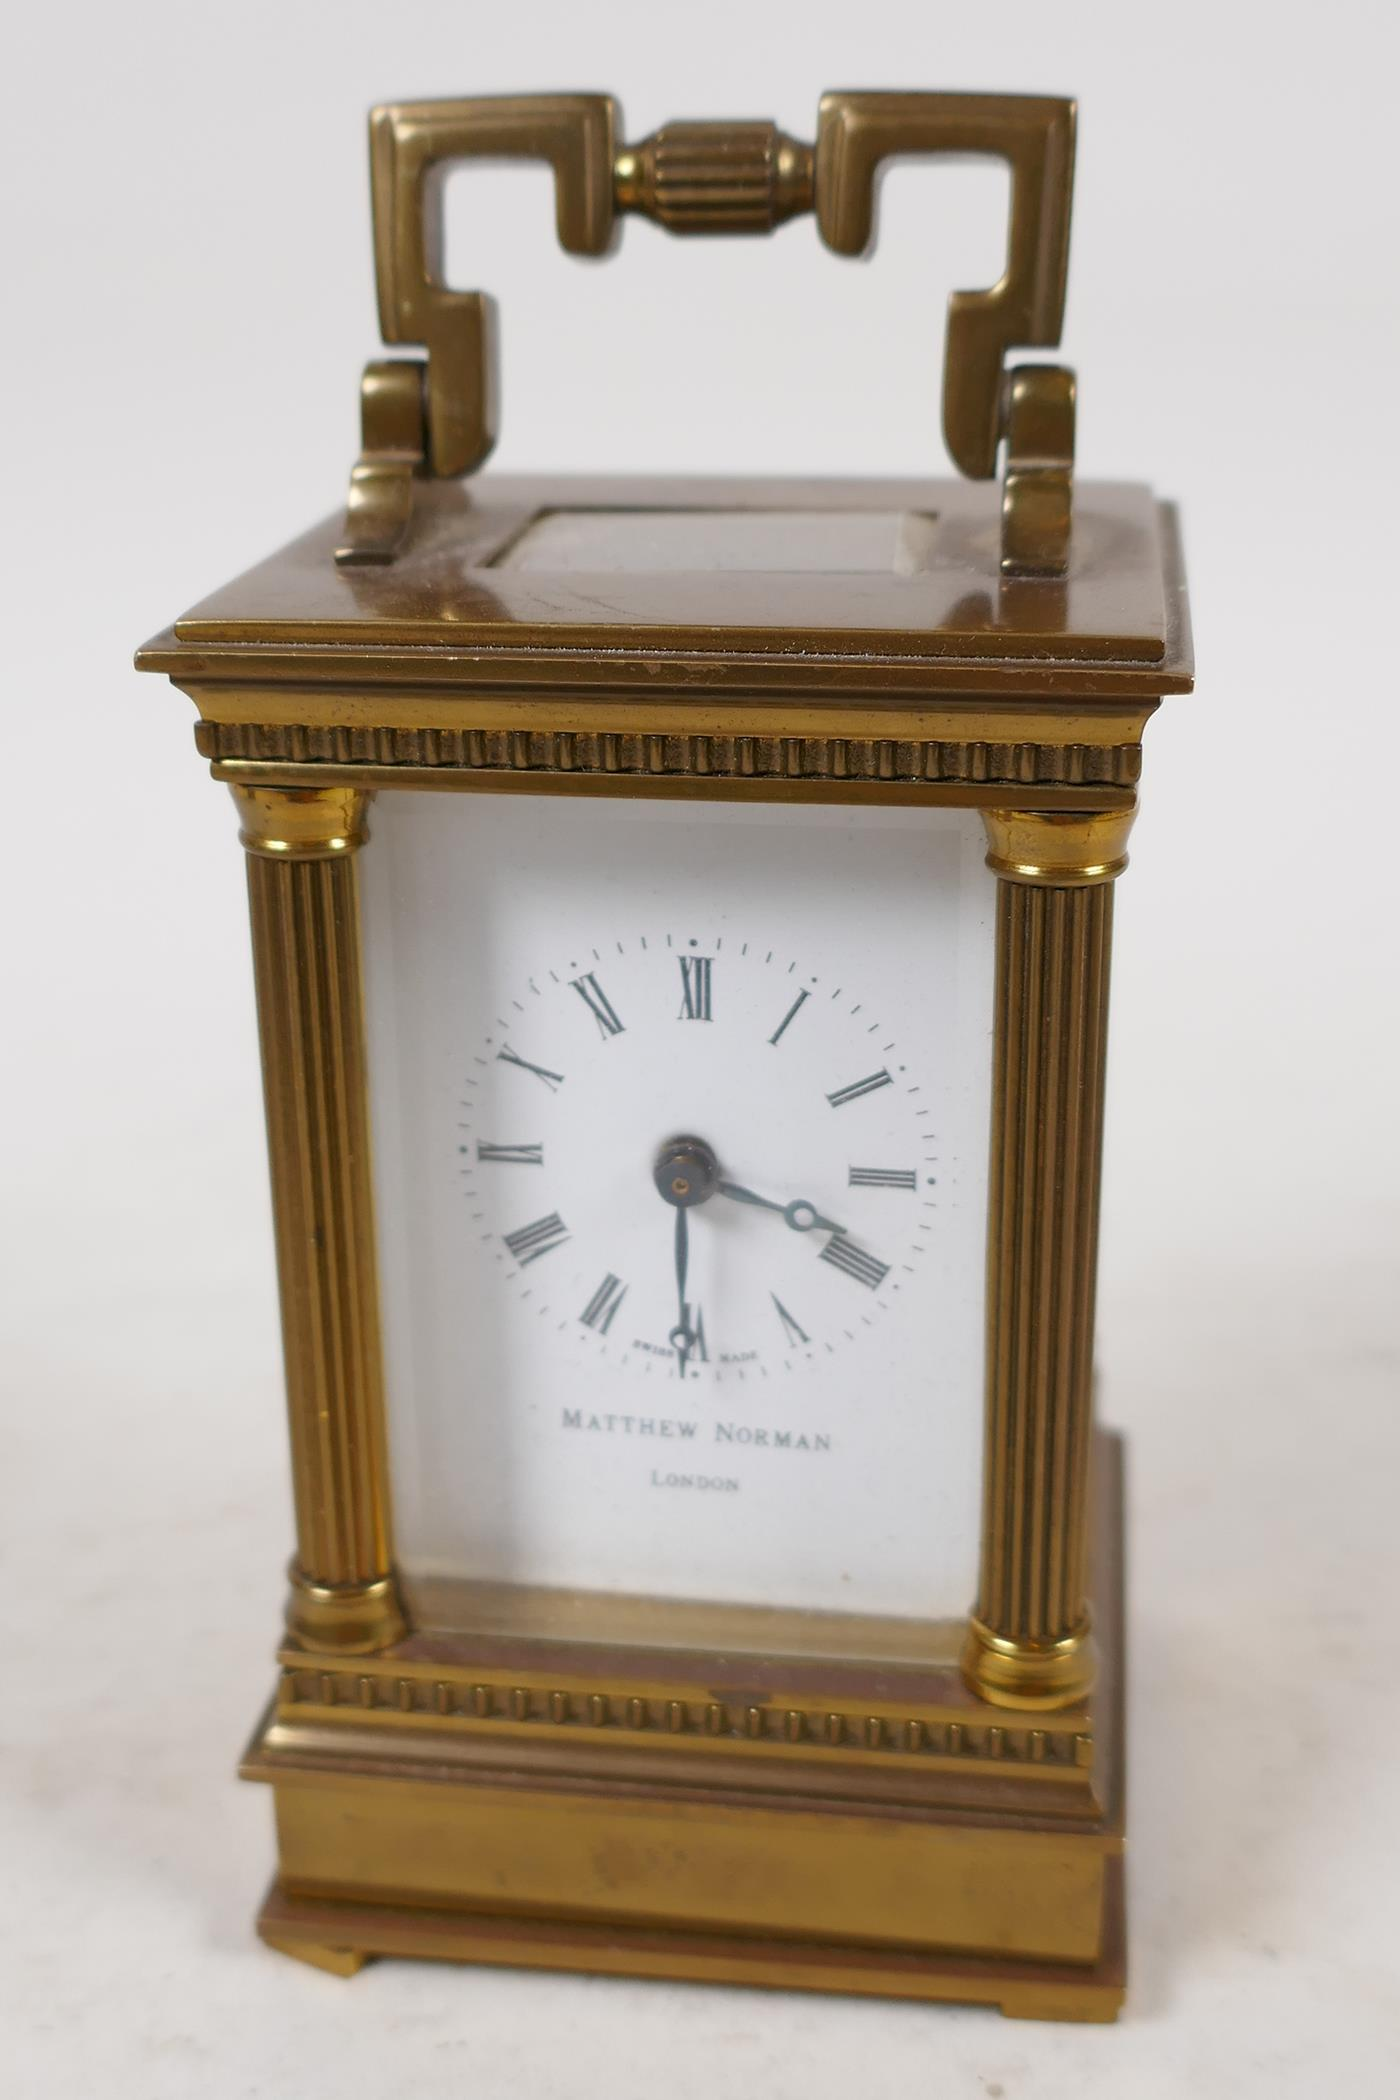 A Swiss made carriage clock in brass case with reeded columns, white enamel dial and Roman numerals,